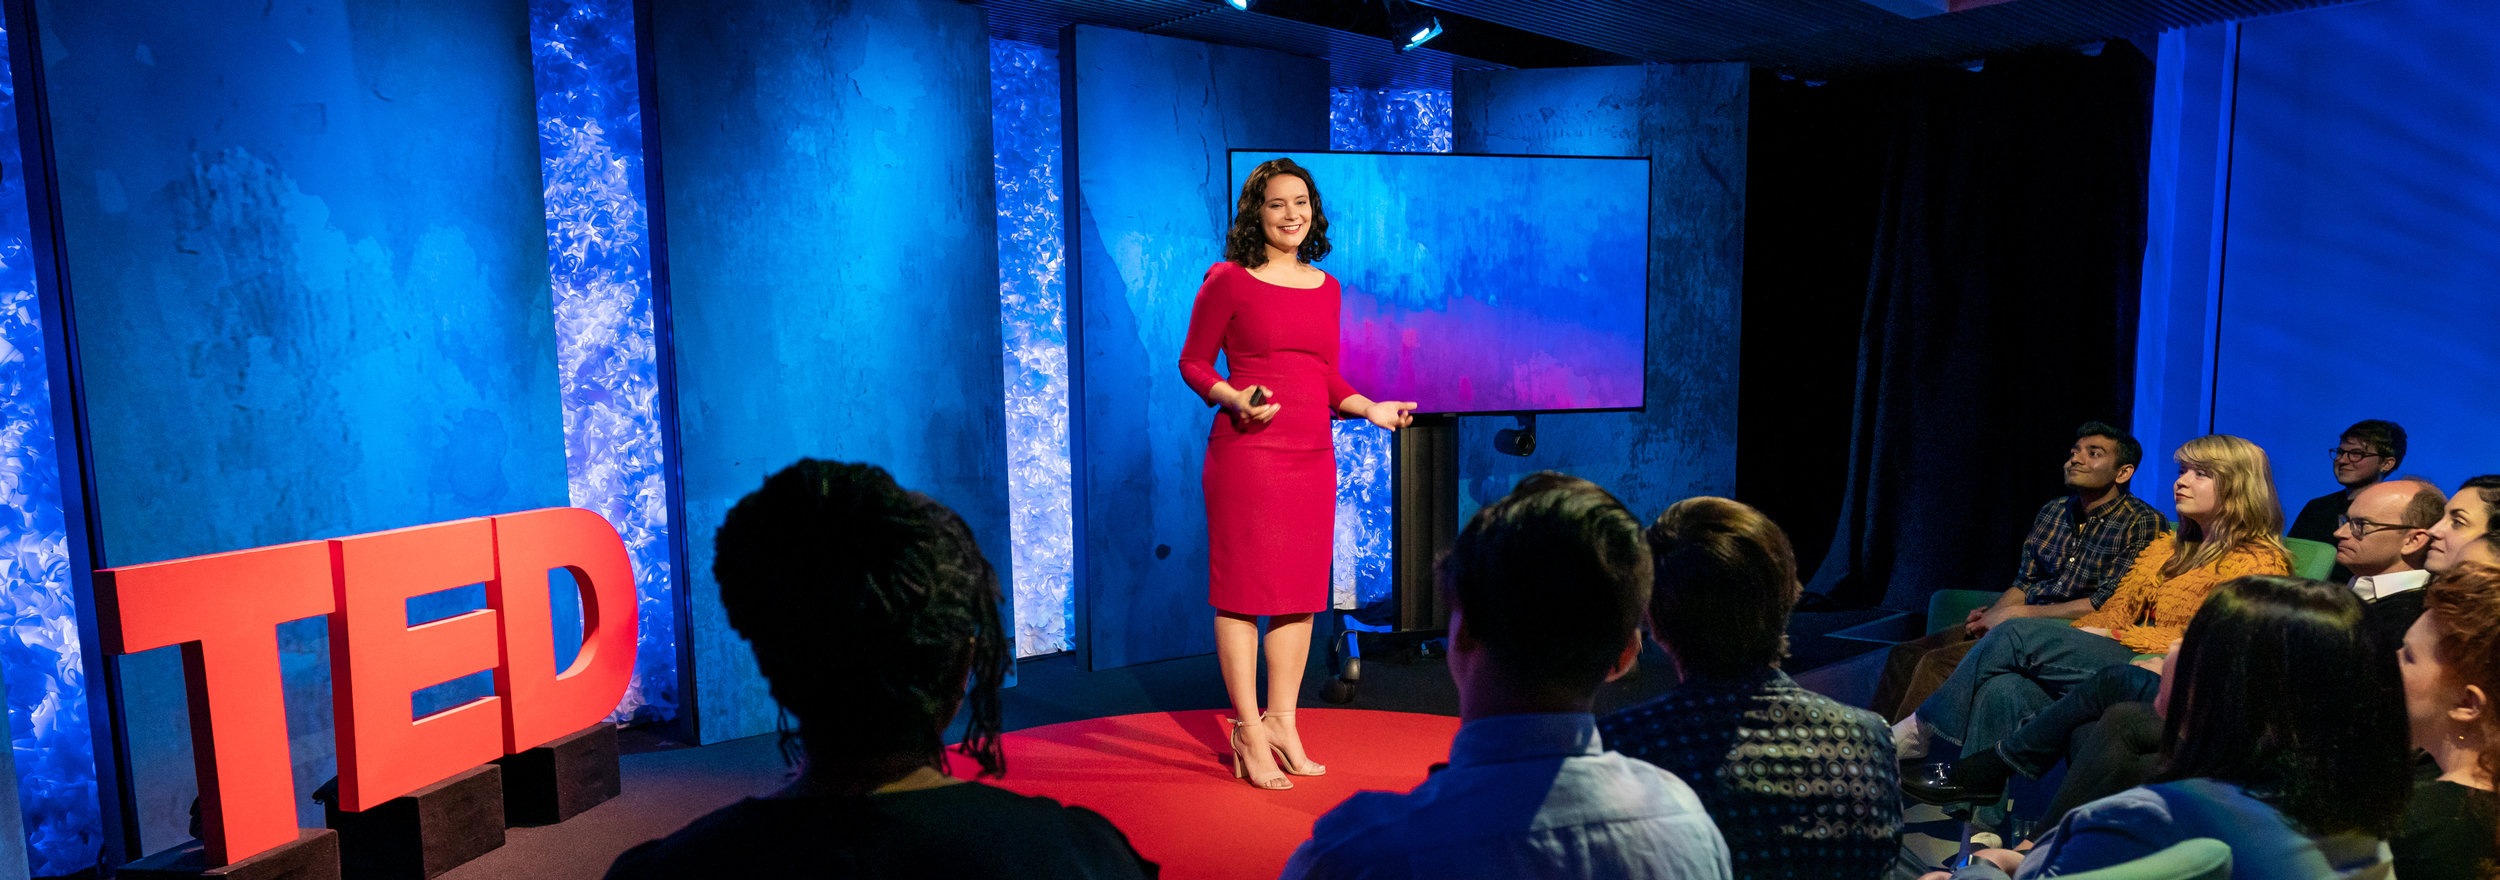 Our CEO Jessica Ochoa Hendrix giving a talk on the TED stage